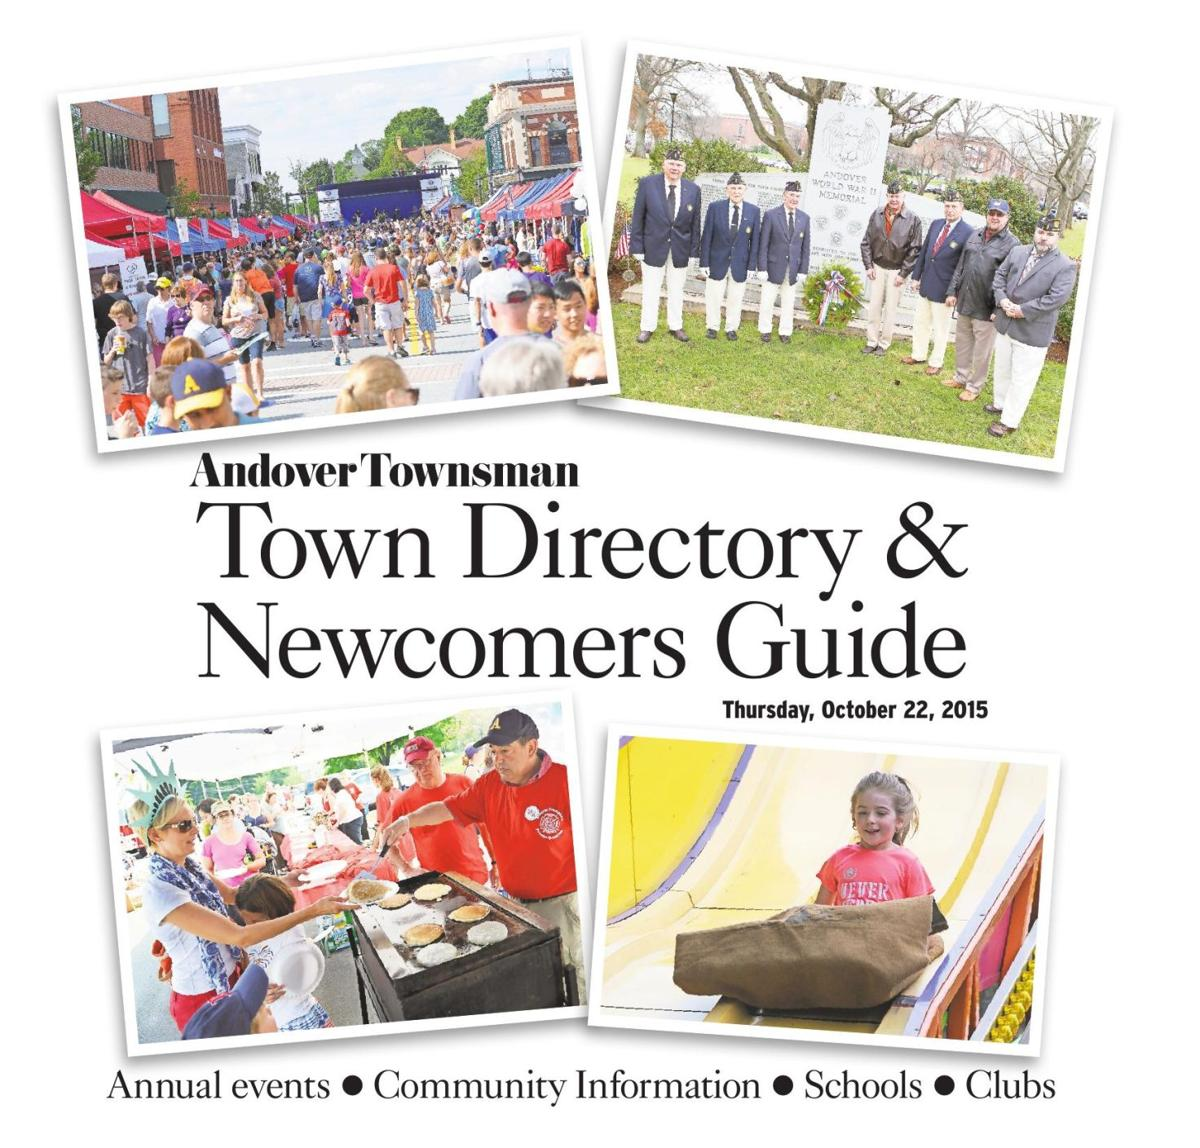 2015 Town Directory & Newcomers Guide